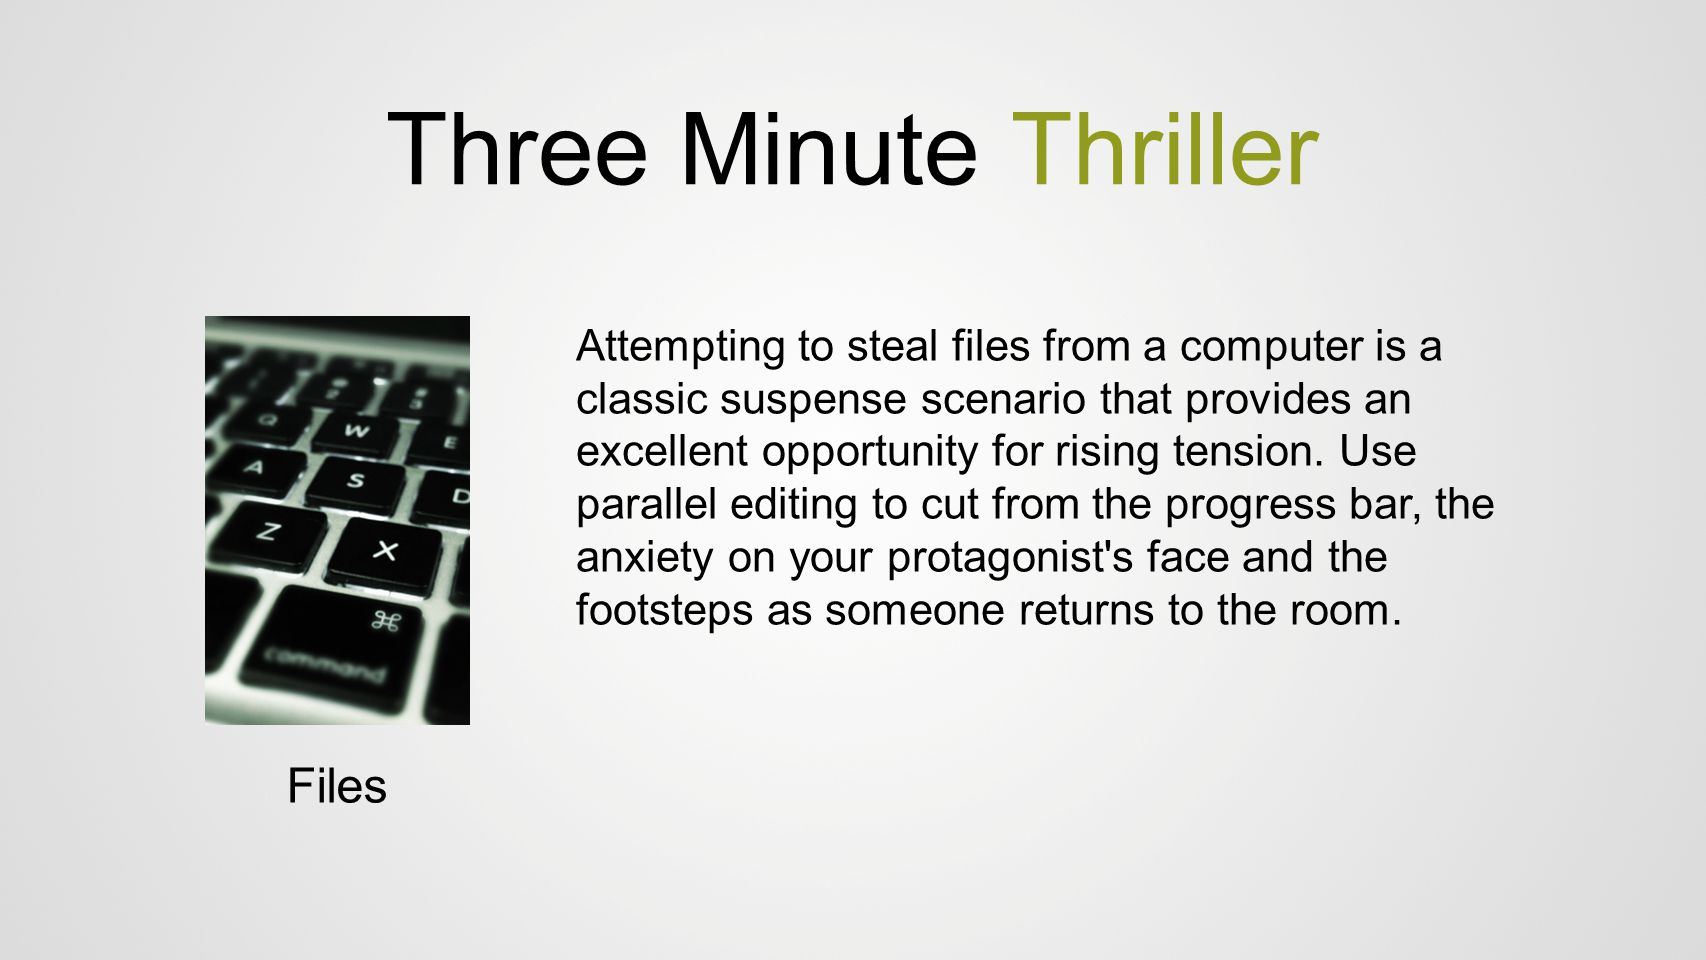 Three Minute Thriller Files Attempting to steal files from a computer is a classic suspense scenario that provides an excellent opportunity for rising